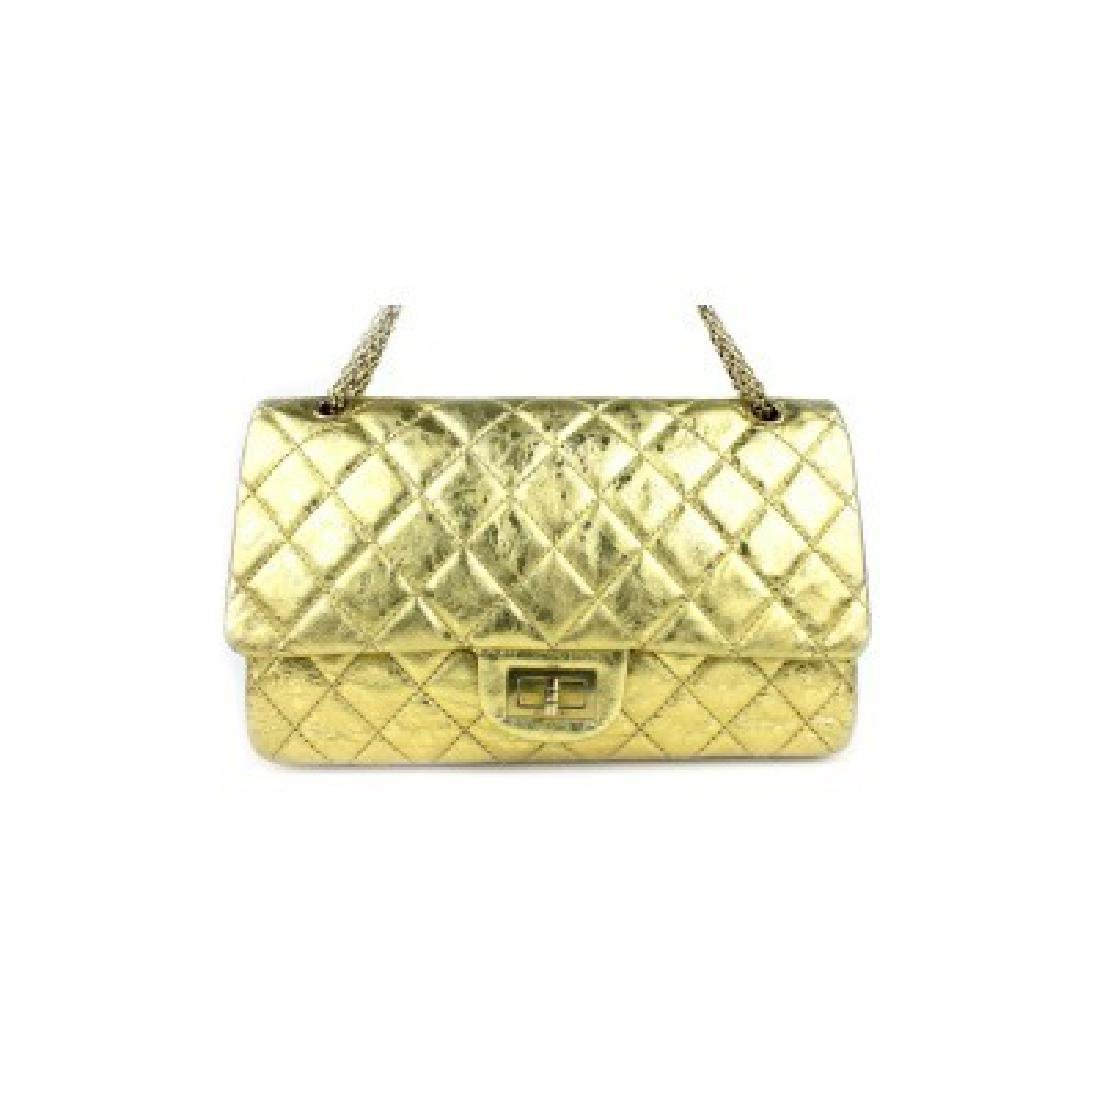 Chanel Gold Jumbo Bag